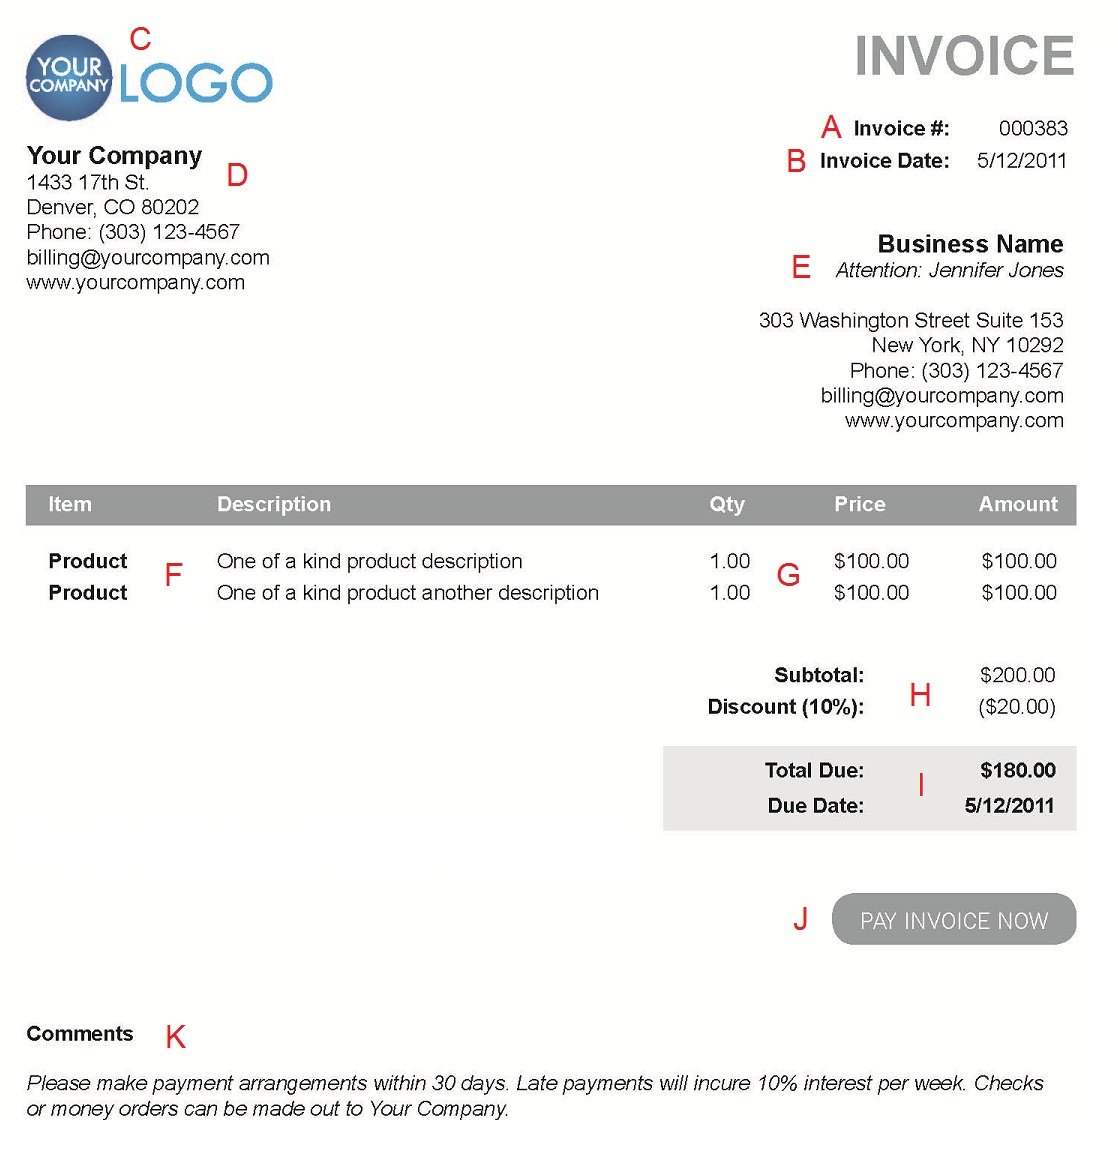 Coolmathgamesus  Ravishing The  Different Sections Of An Electronic Payment Invoice With Inspiring A  With Lovely Simple Receipt Format Also I Confirm Receipt Of Your Email In Addition Rent Receipt Format Download And Legal Receipt Of Payment Template As Well As Cash Receipt Letter Sample Additionally Car Receipt Template Uk From Paysimplecom With Coolmathgamesus  Inspiring The  Different Sections Of An Electronic Payment Invoice With Lovely A  And Ravishing Simple Receipt Format Also I Confirm Receipt Of Your Email In Addition Rent Receipt Format Download From Paysimplecom